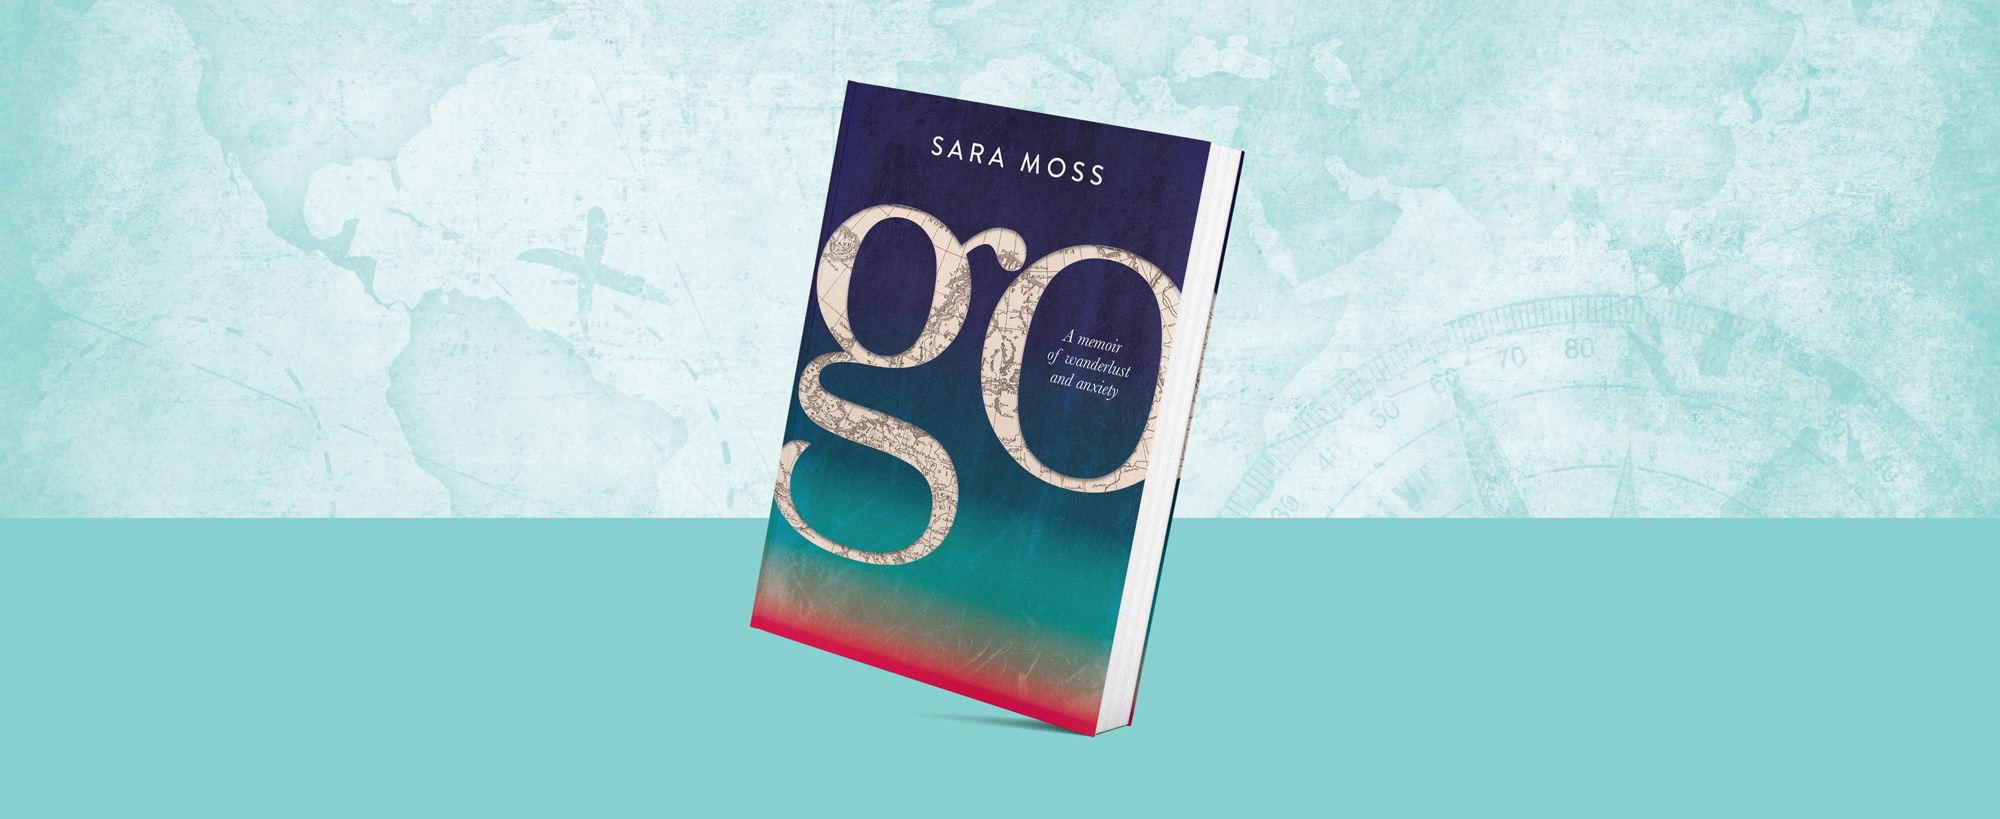 Go: A memoir of wanderlust and anxiety